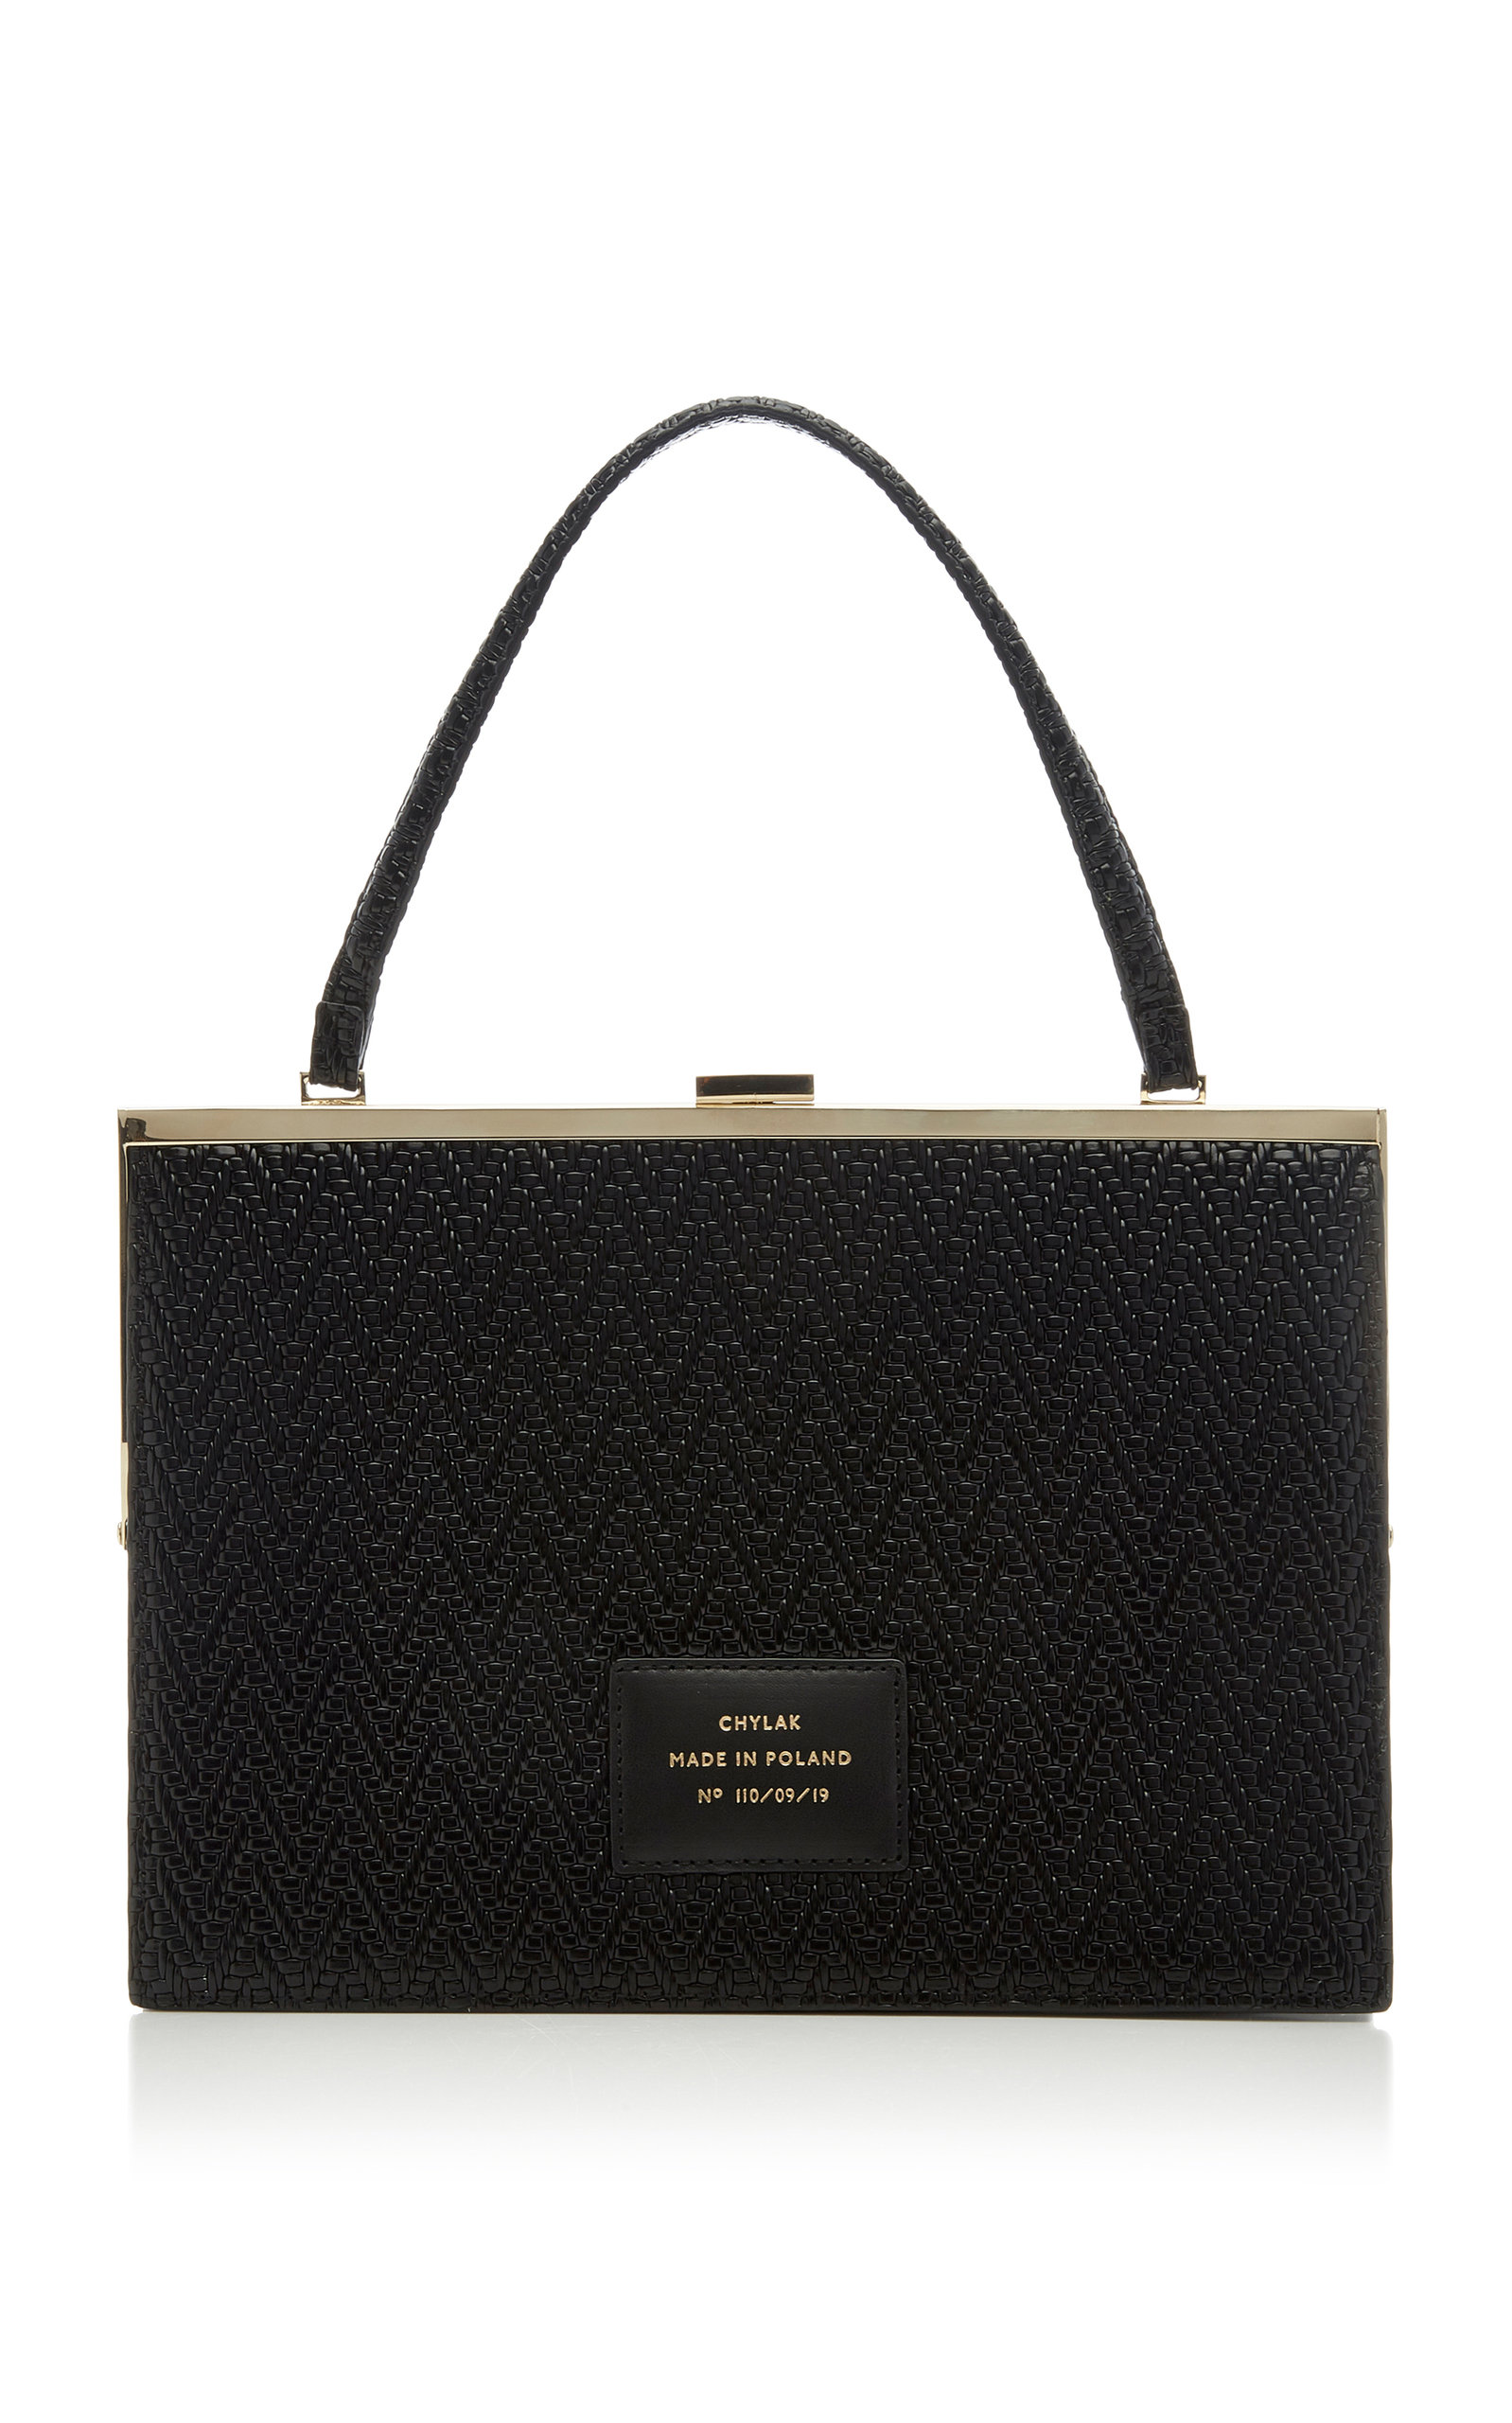 Chylak Woven Leather Top Handle Bag In Black